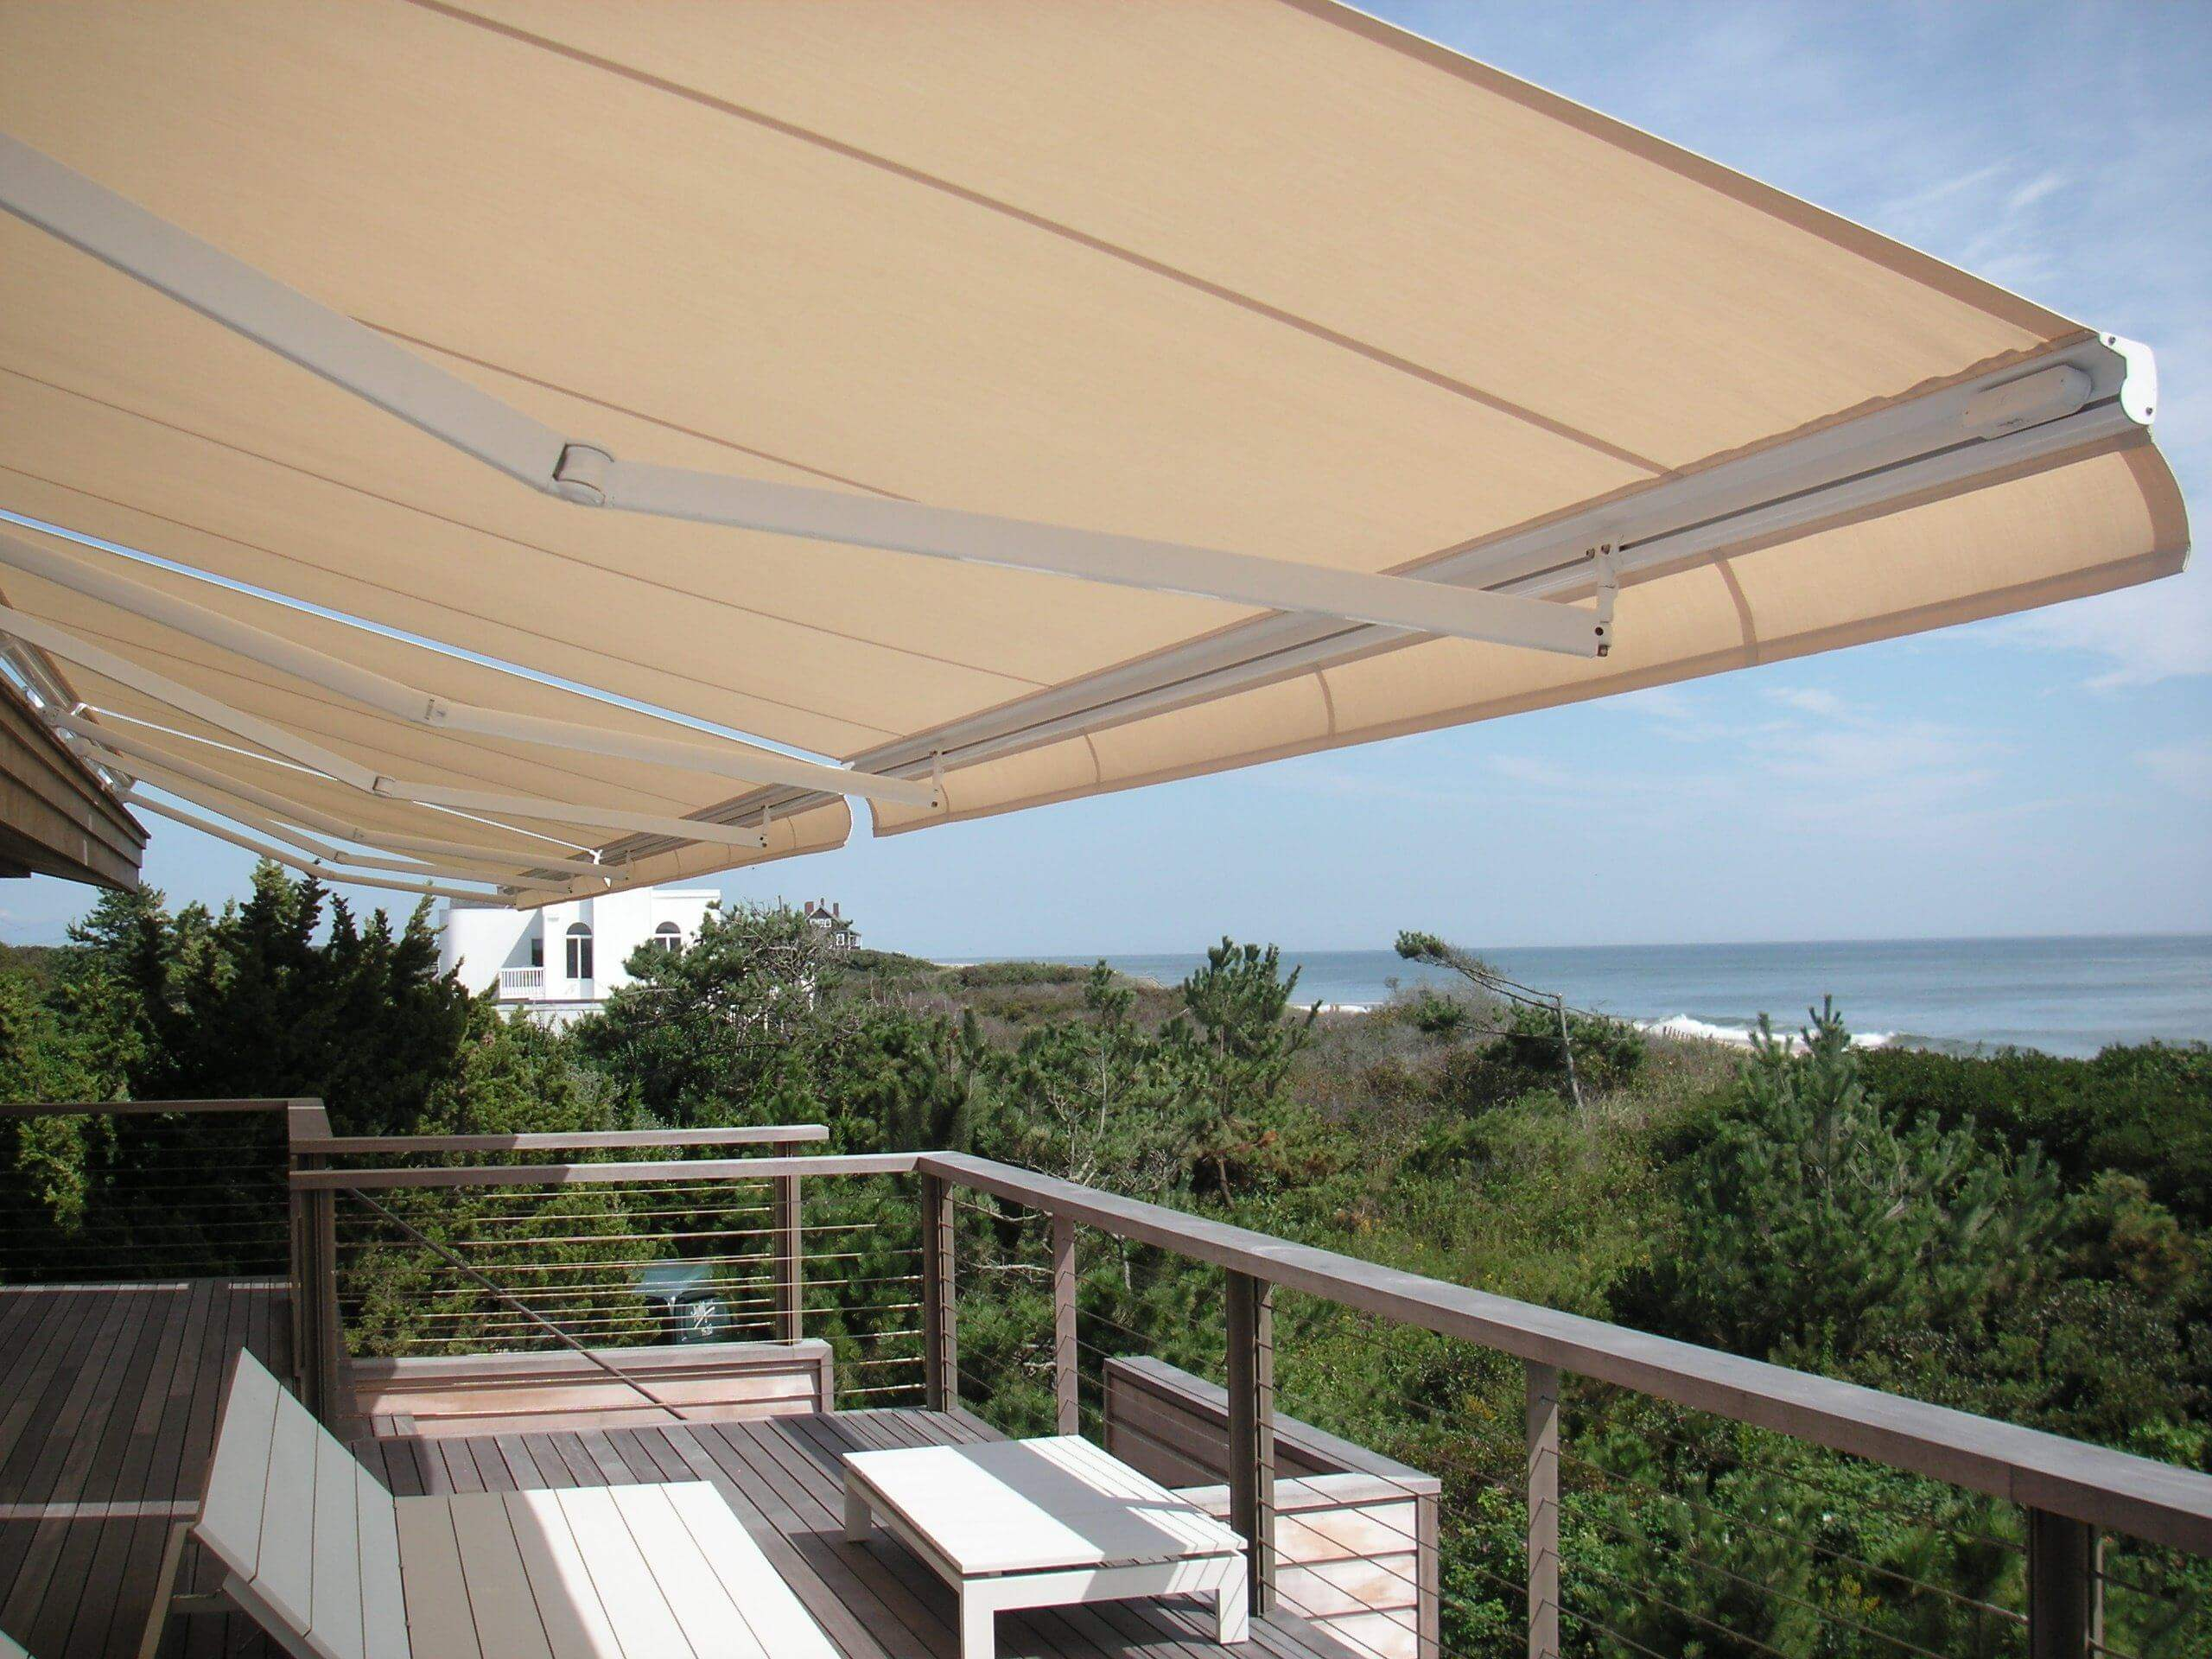 Exterior: The Best Things To Do Beneath The Awning